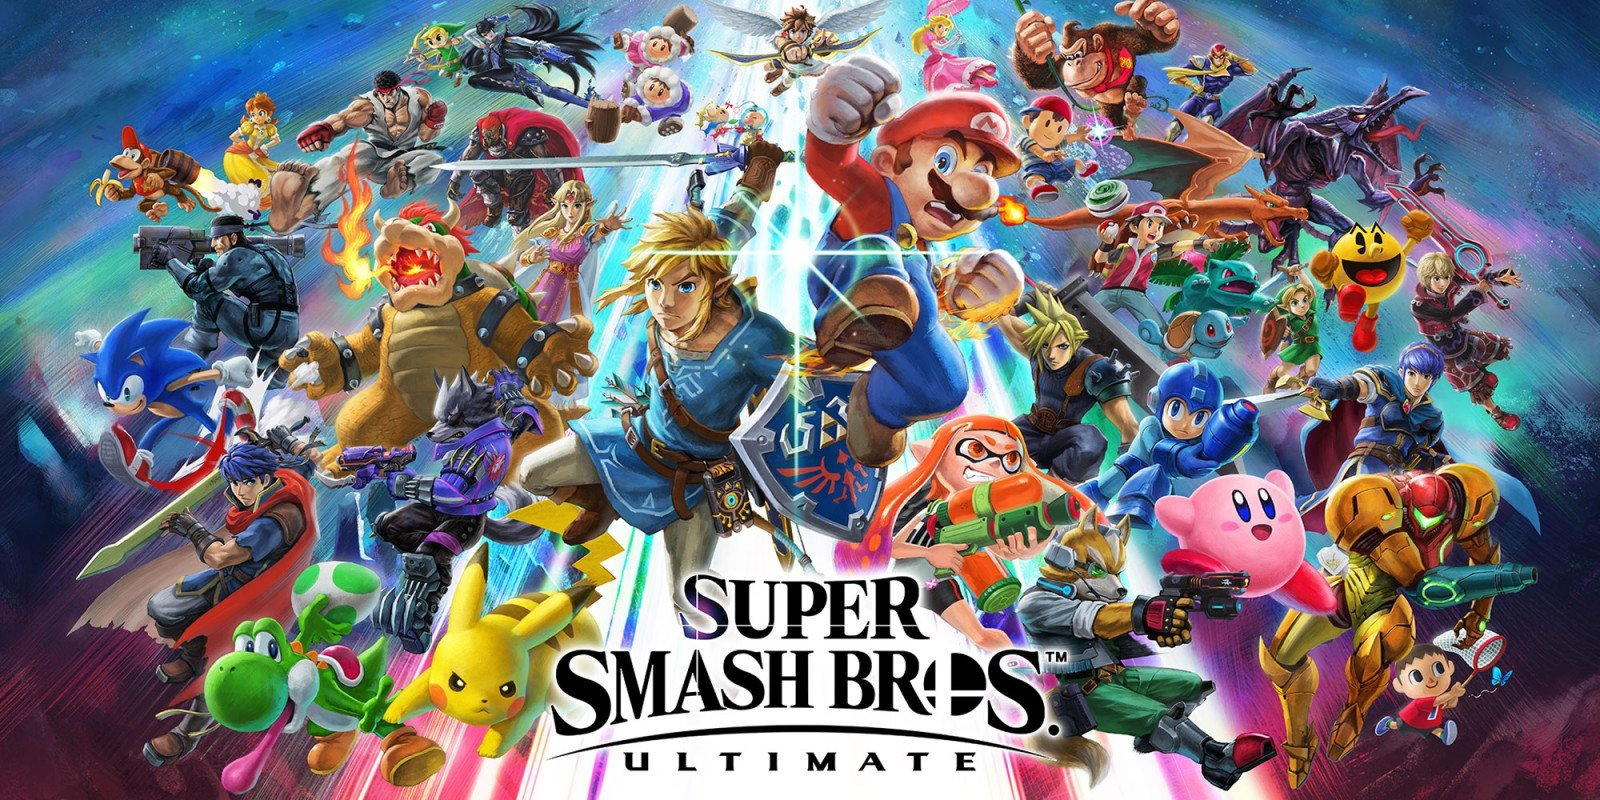 Free Super Smash Bros. Ultimate Content Is Coming For Nintendo's Online Subscribers